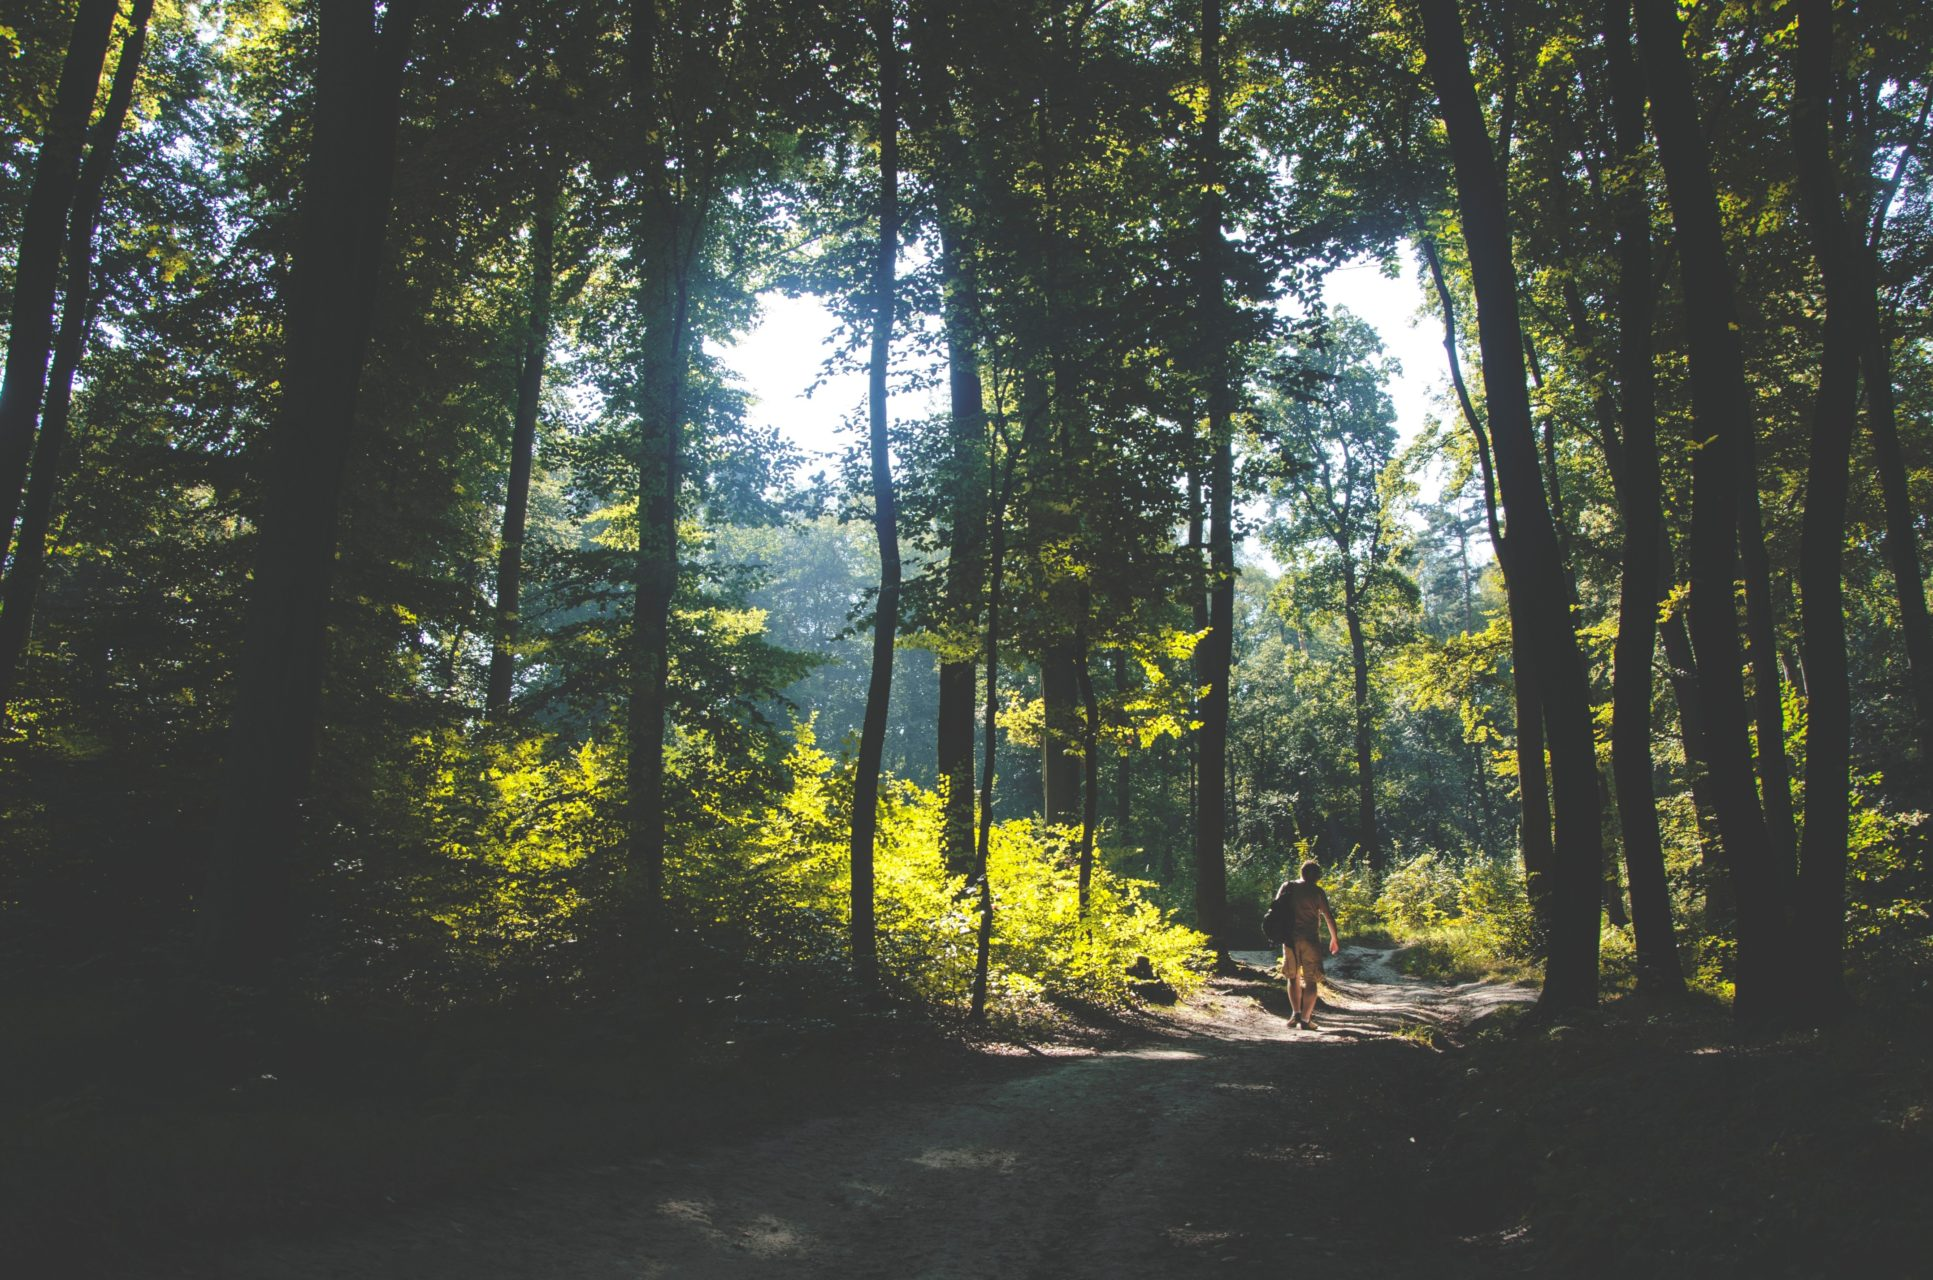 Person Backpacking Through a Forest